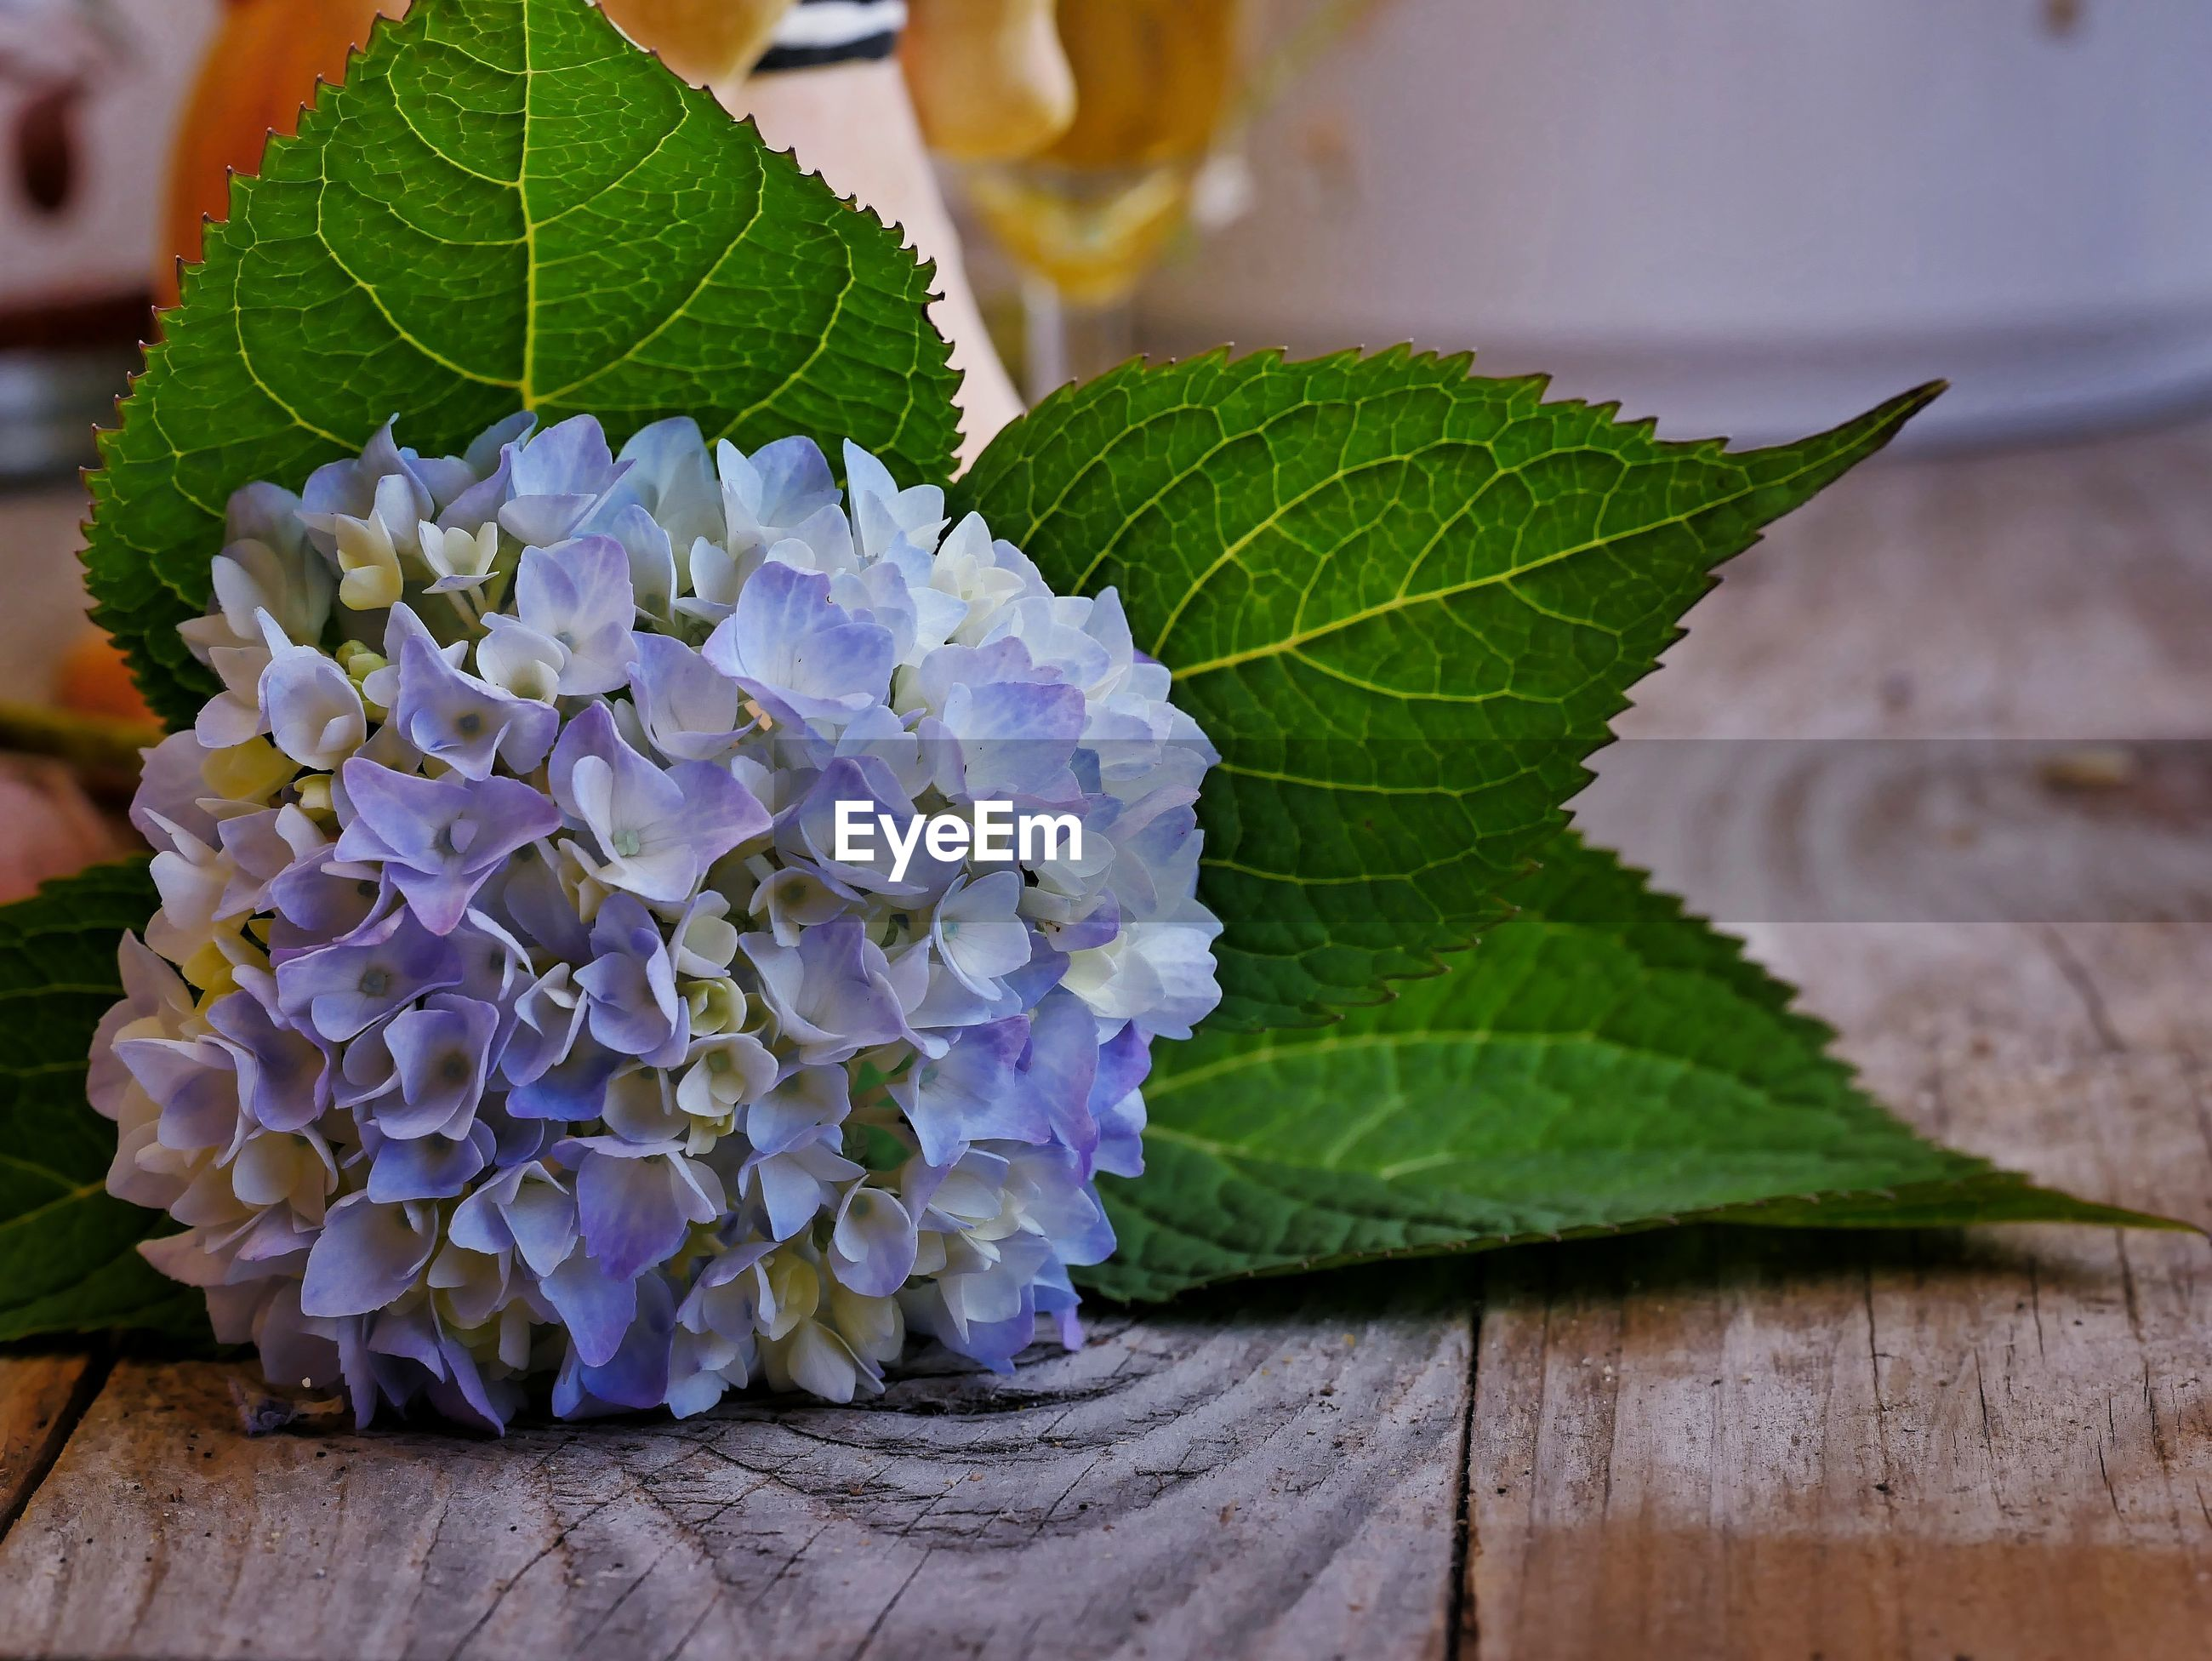 CLOSE-UP OF PURPLE FLOWERING PLANT ON WOODEN TABLE